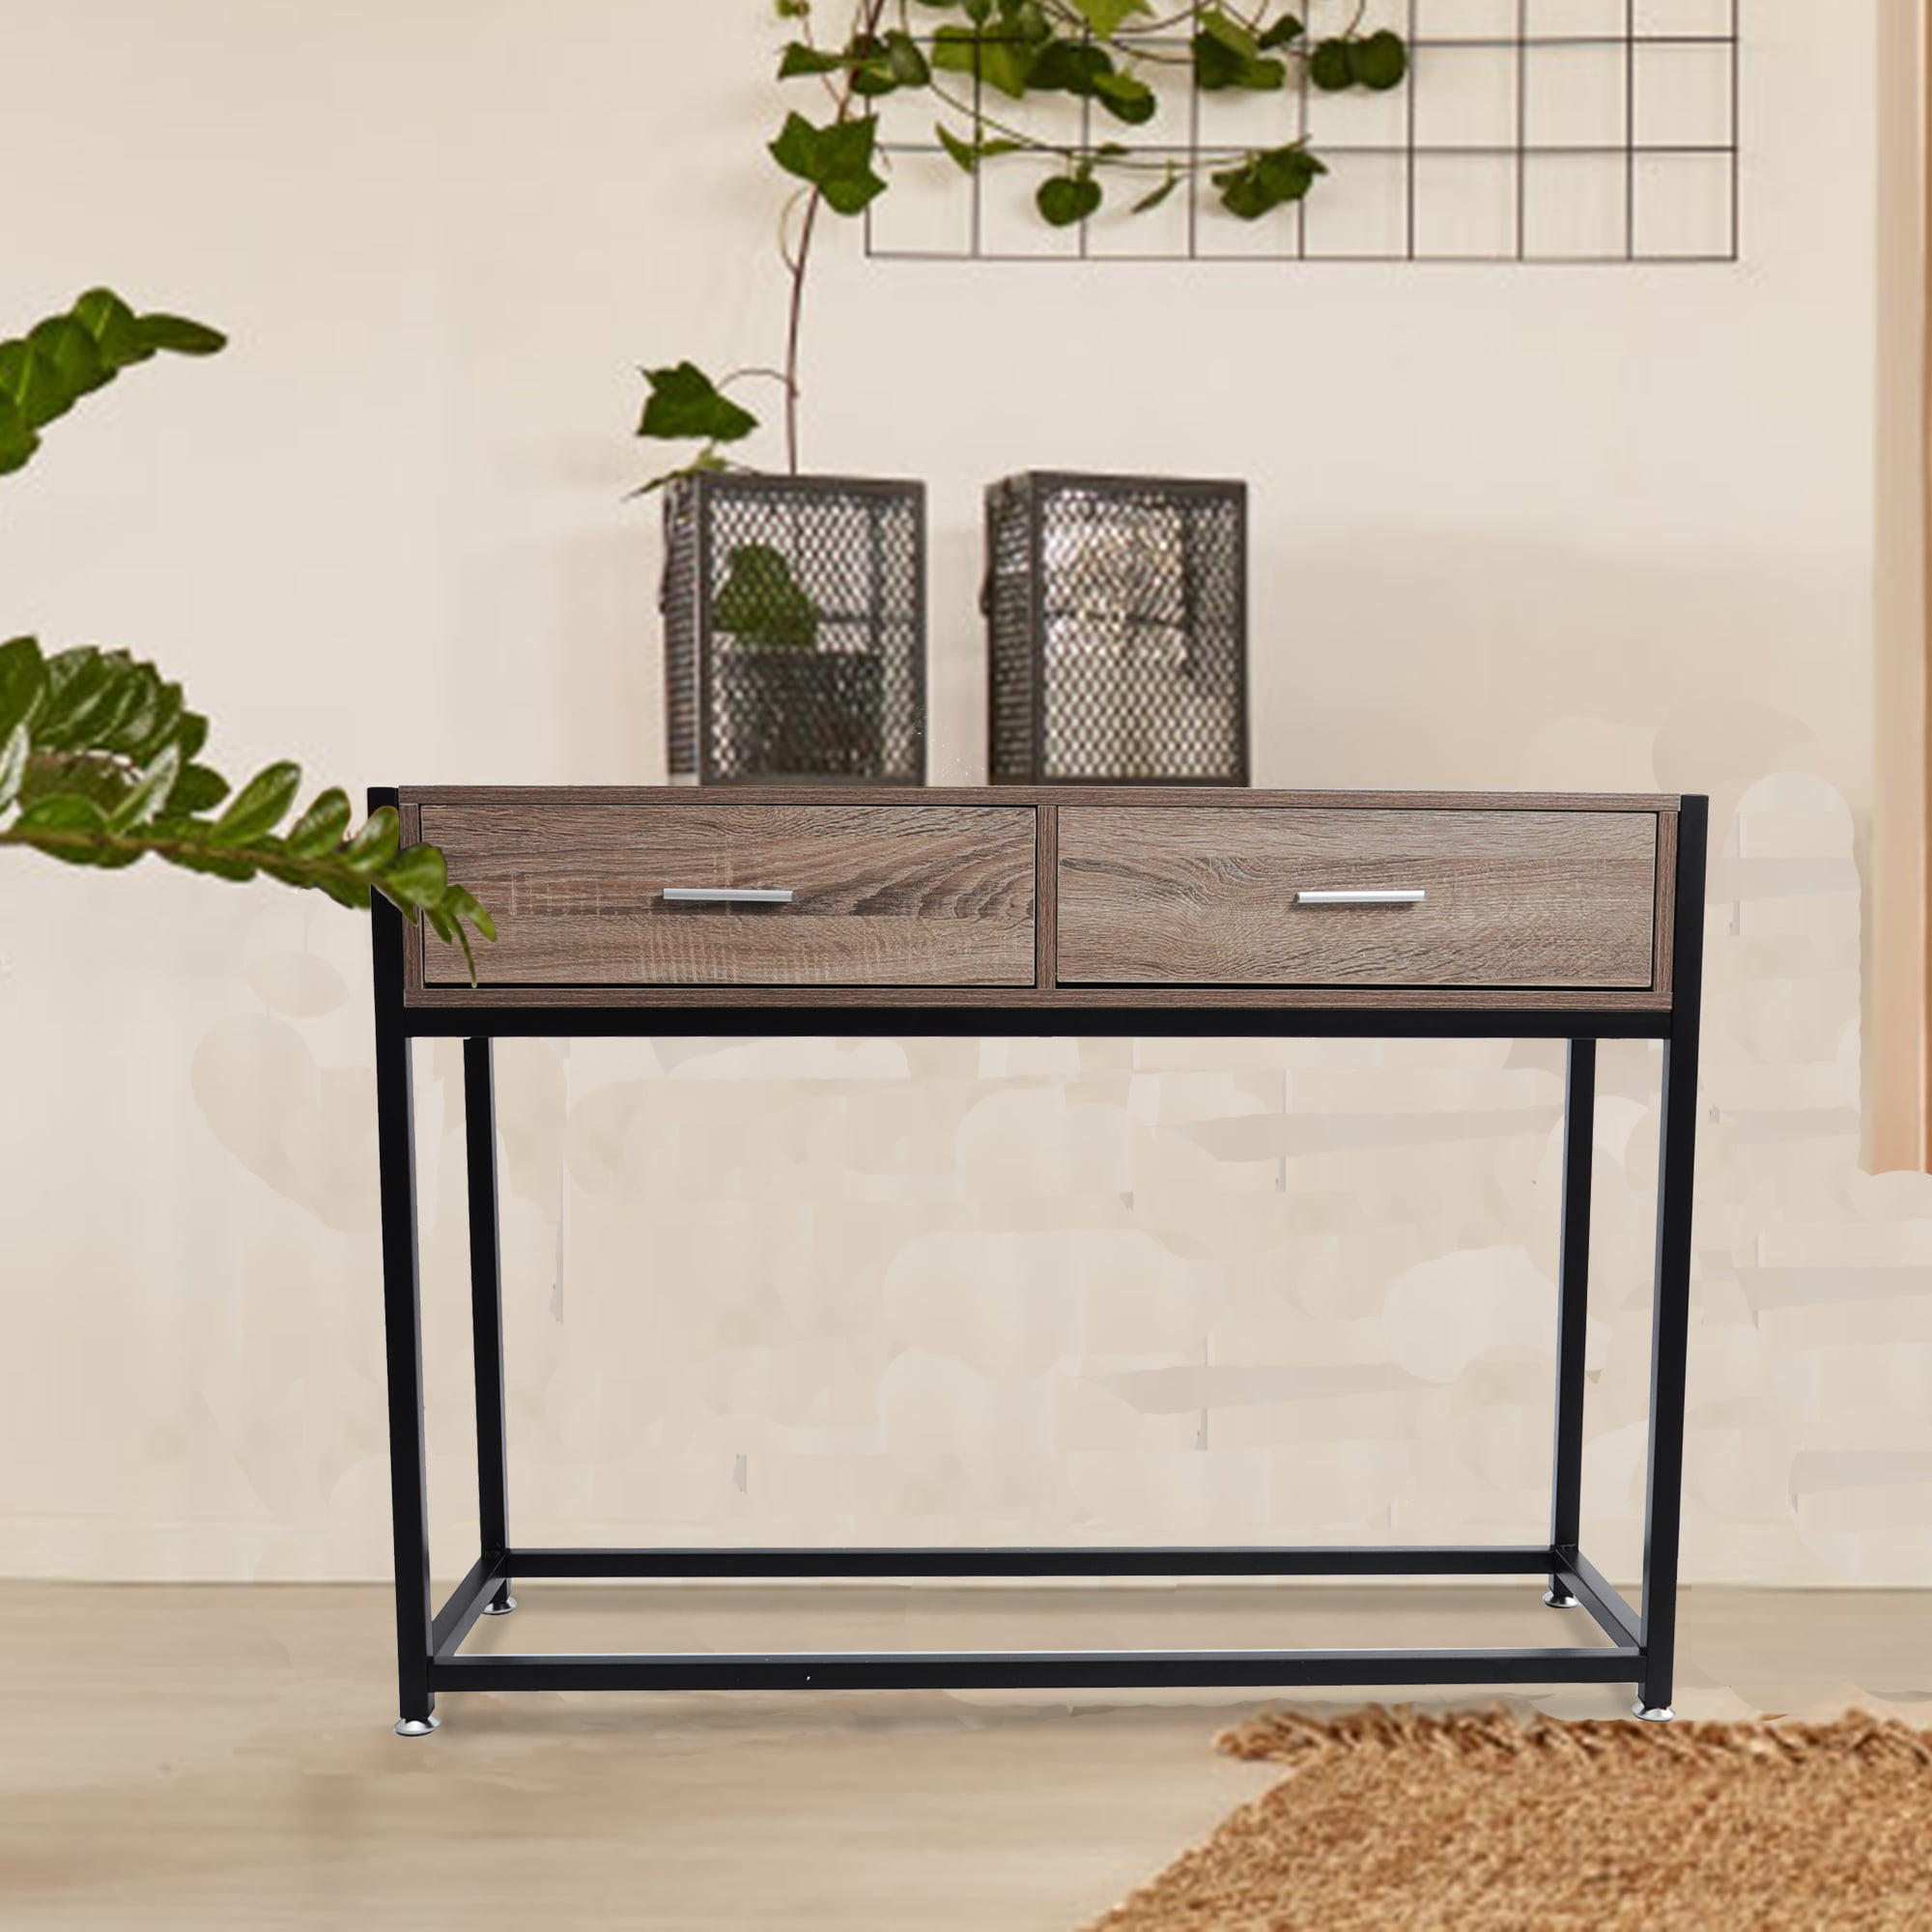 Karmasfar Product Entryway Console Table Hallway With 2 Drawers Wooden Metal Narrow Sofa Table With Two Storage Compartments Brown Walmart Com Walmart Com